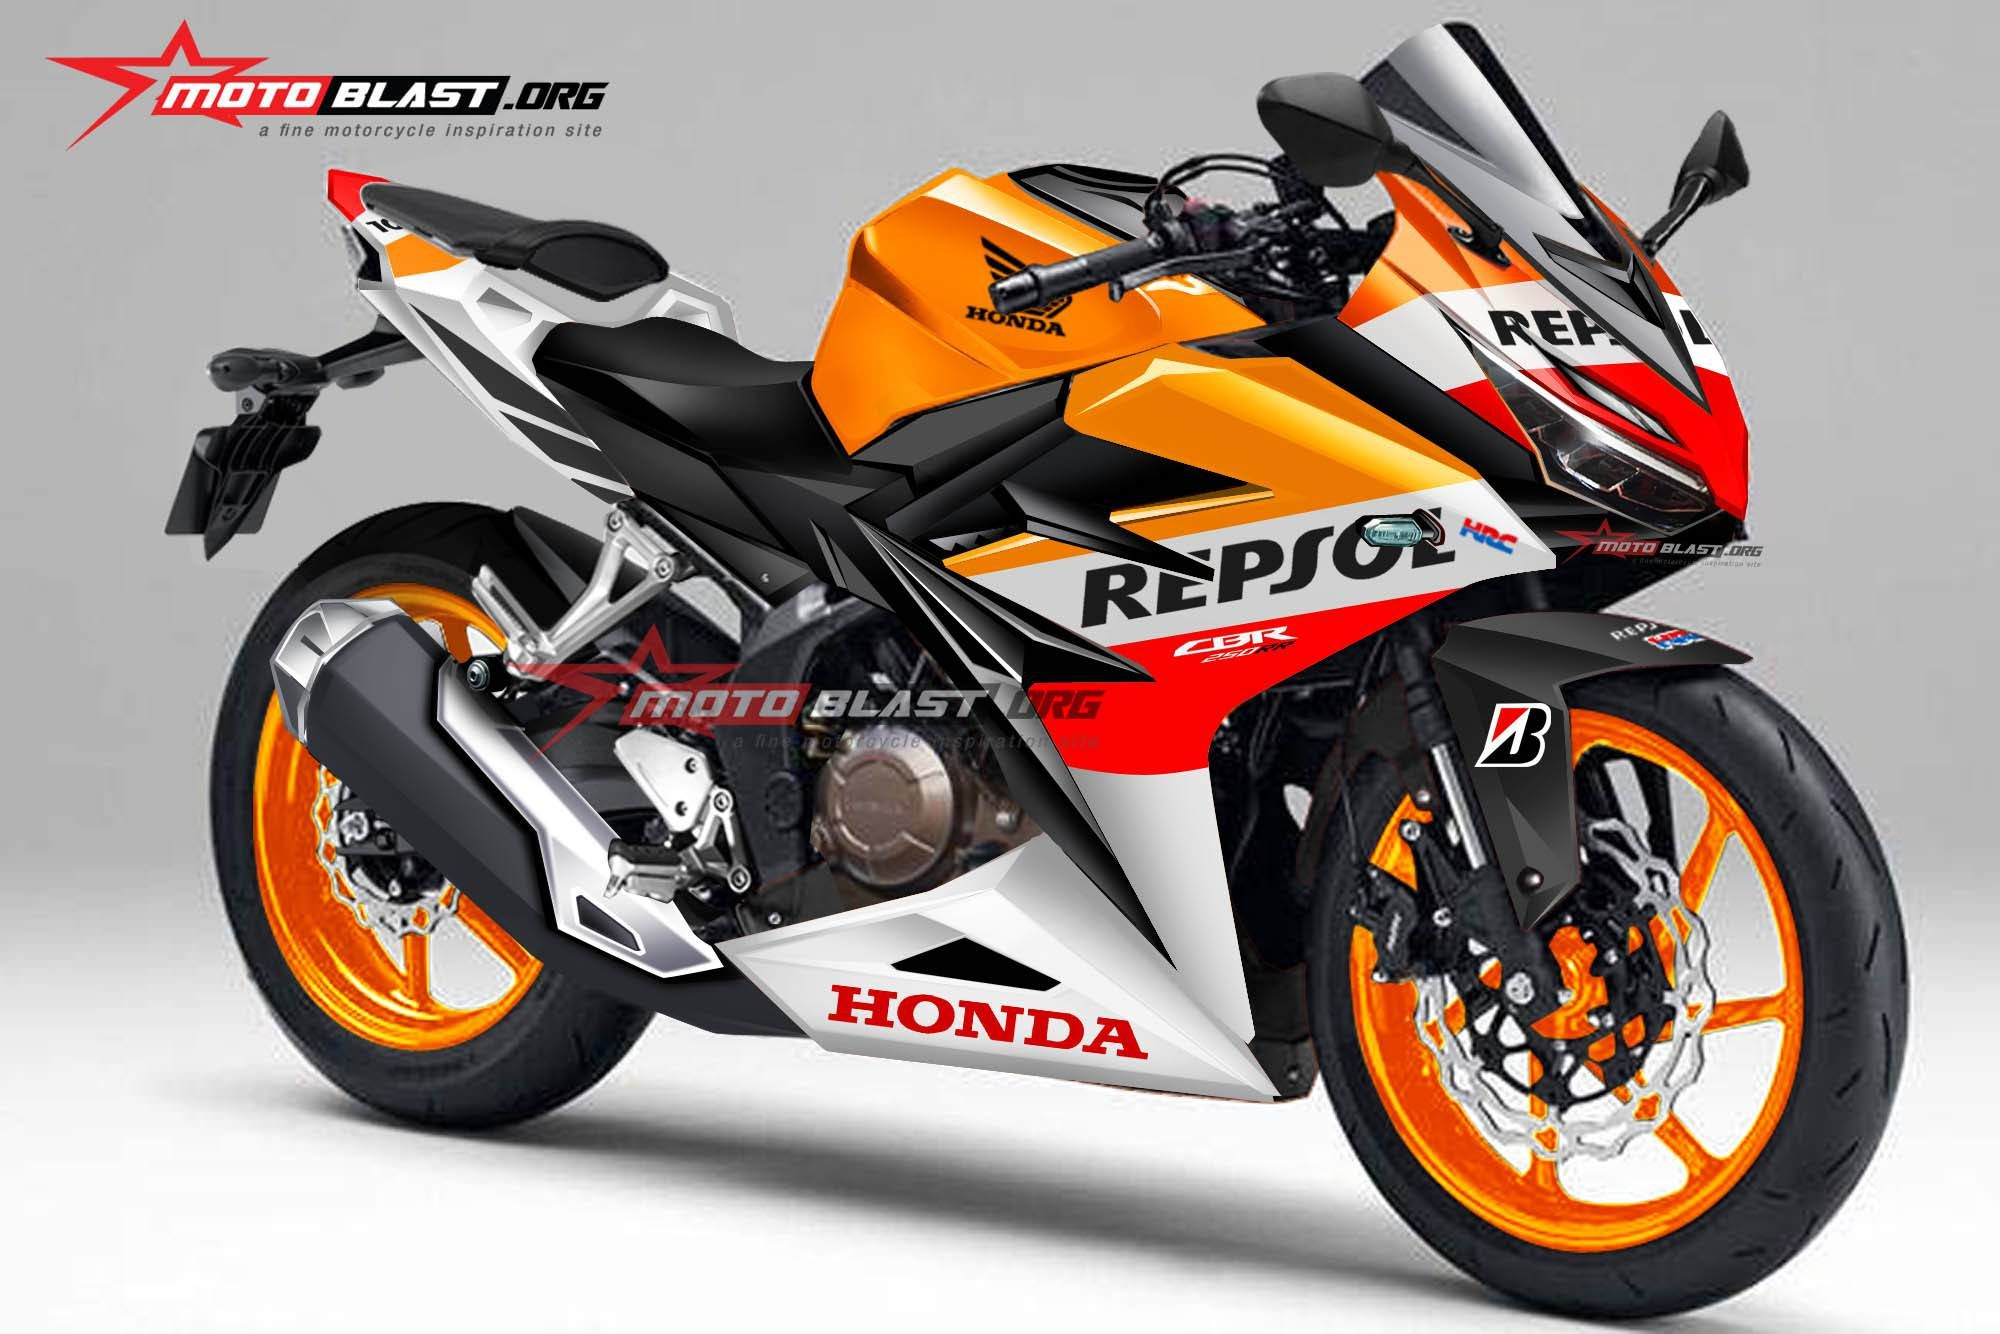 True honda super sport bike cbr250rr cbr300rr lookout yamaha r3 ninja 300 ktm rc390 duke the small cc sportbike motorcycle market is he